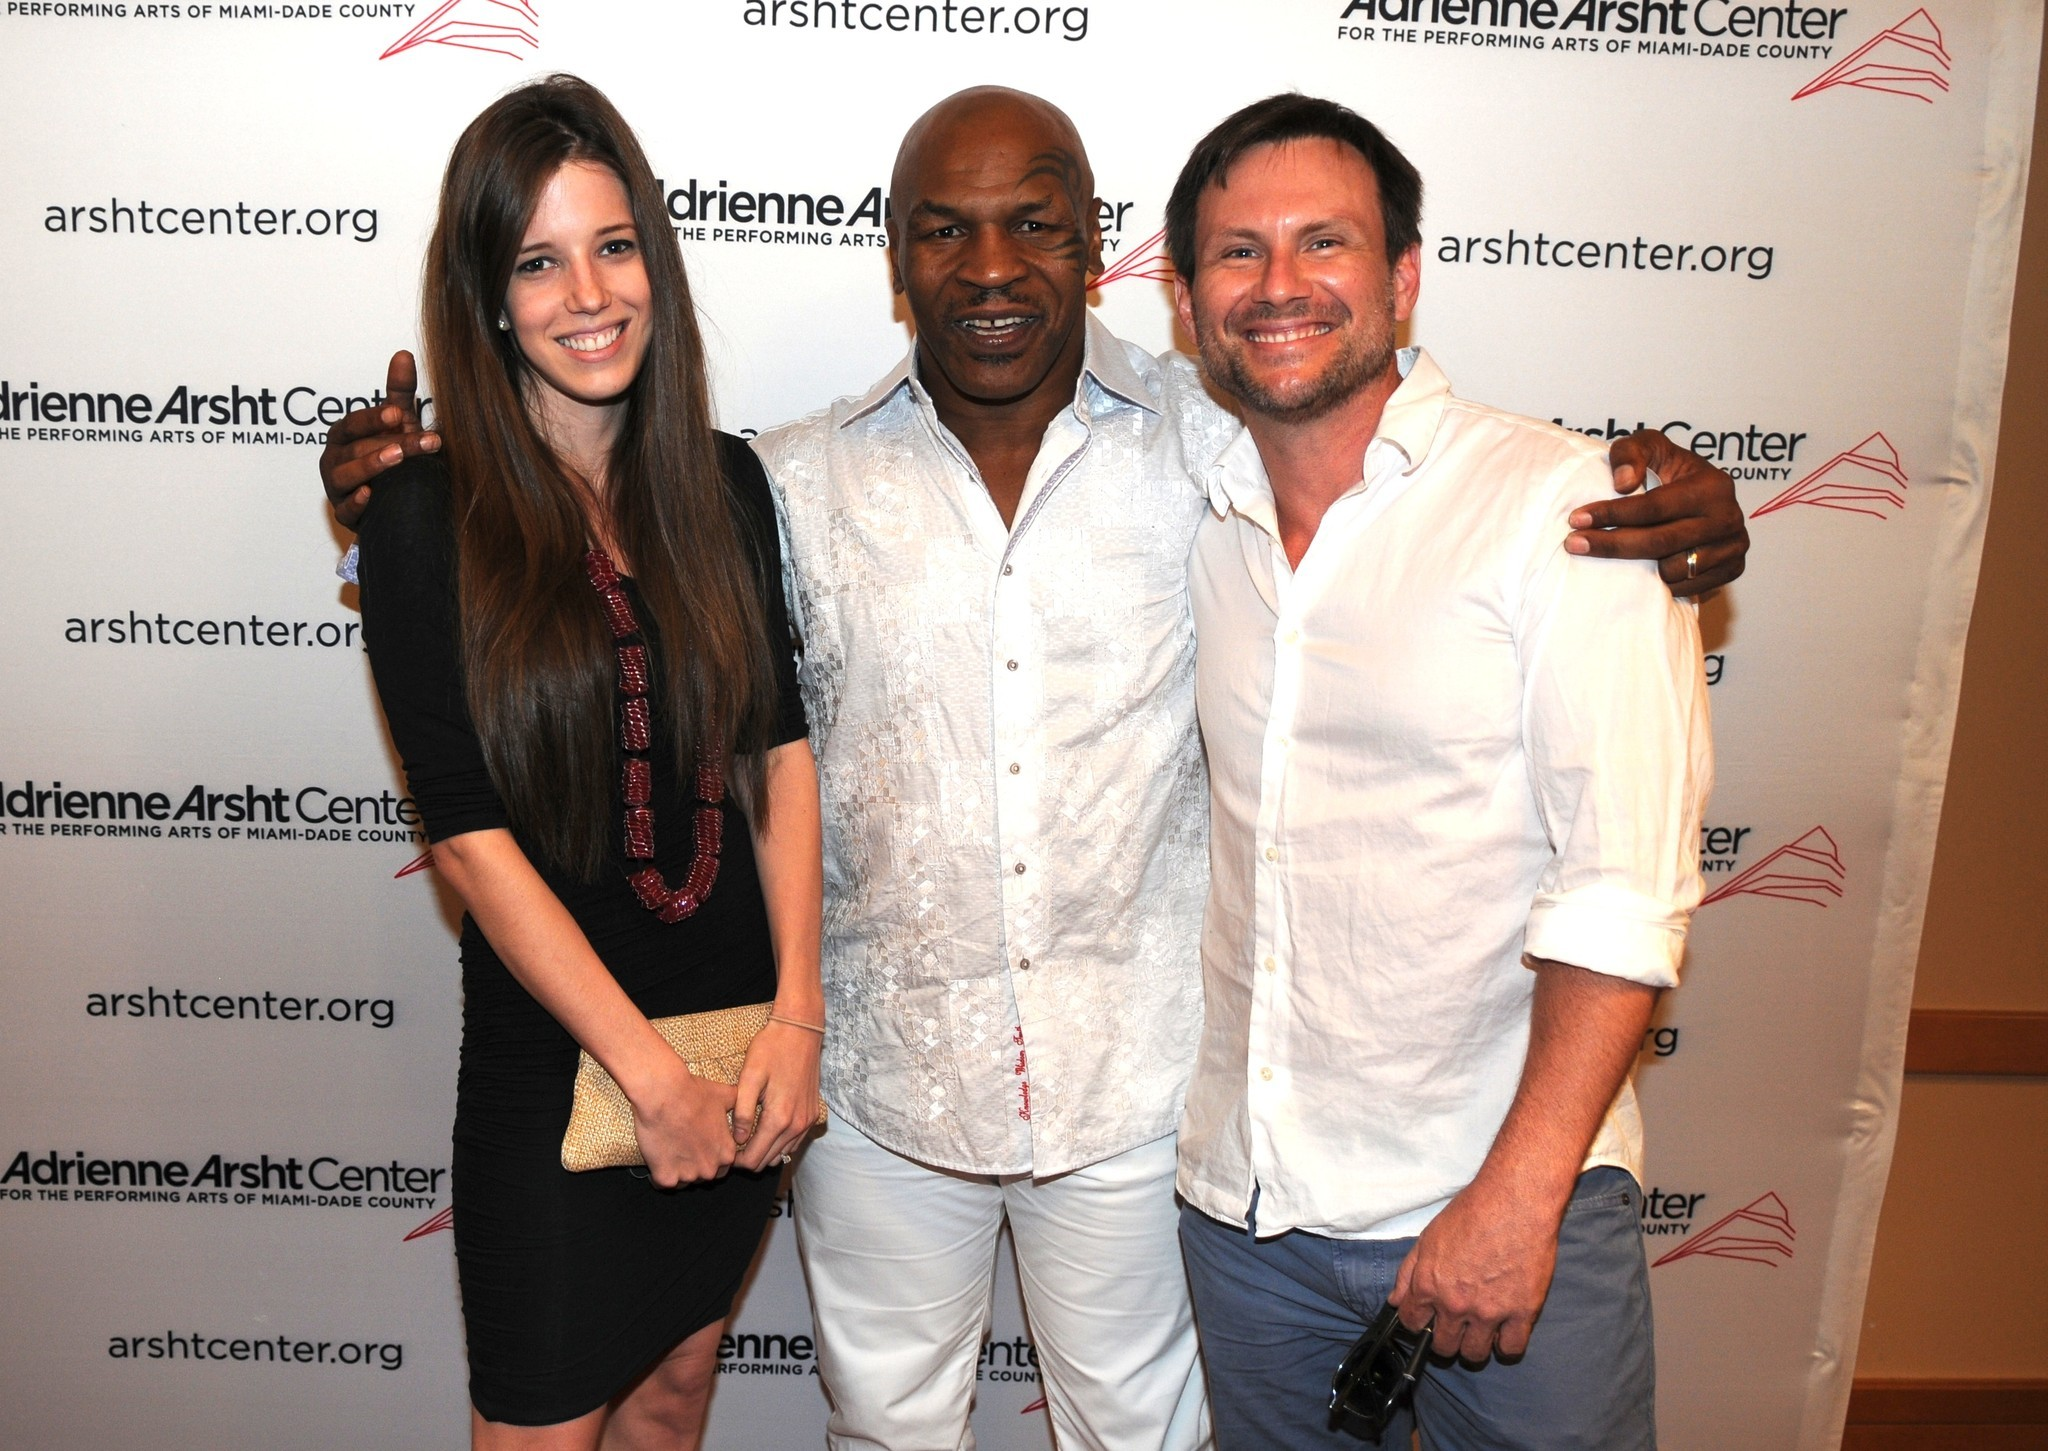 Celeb-spotting around South Florida - Brittany Lopez, Mike Tyson and Christian Slater